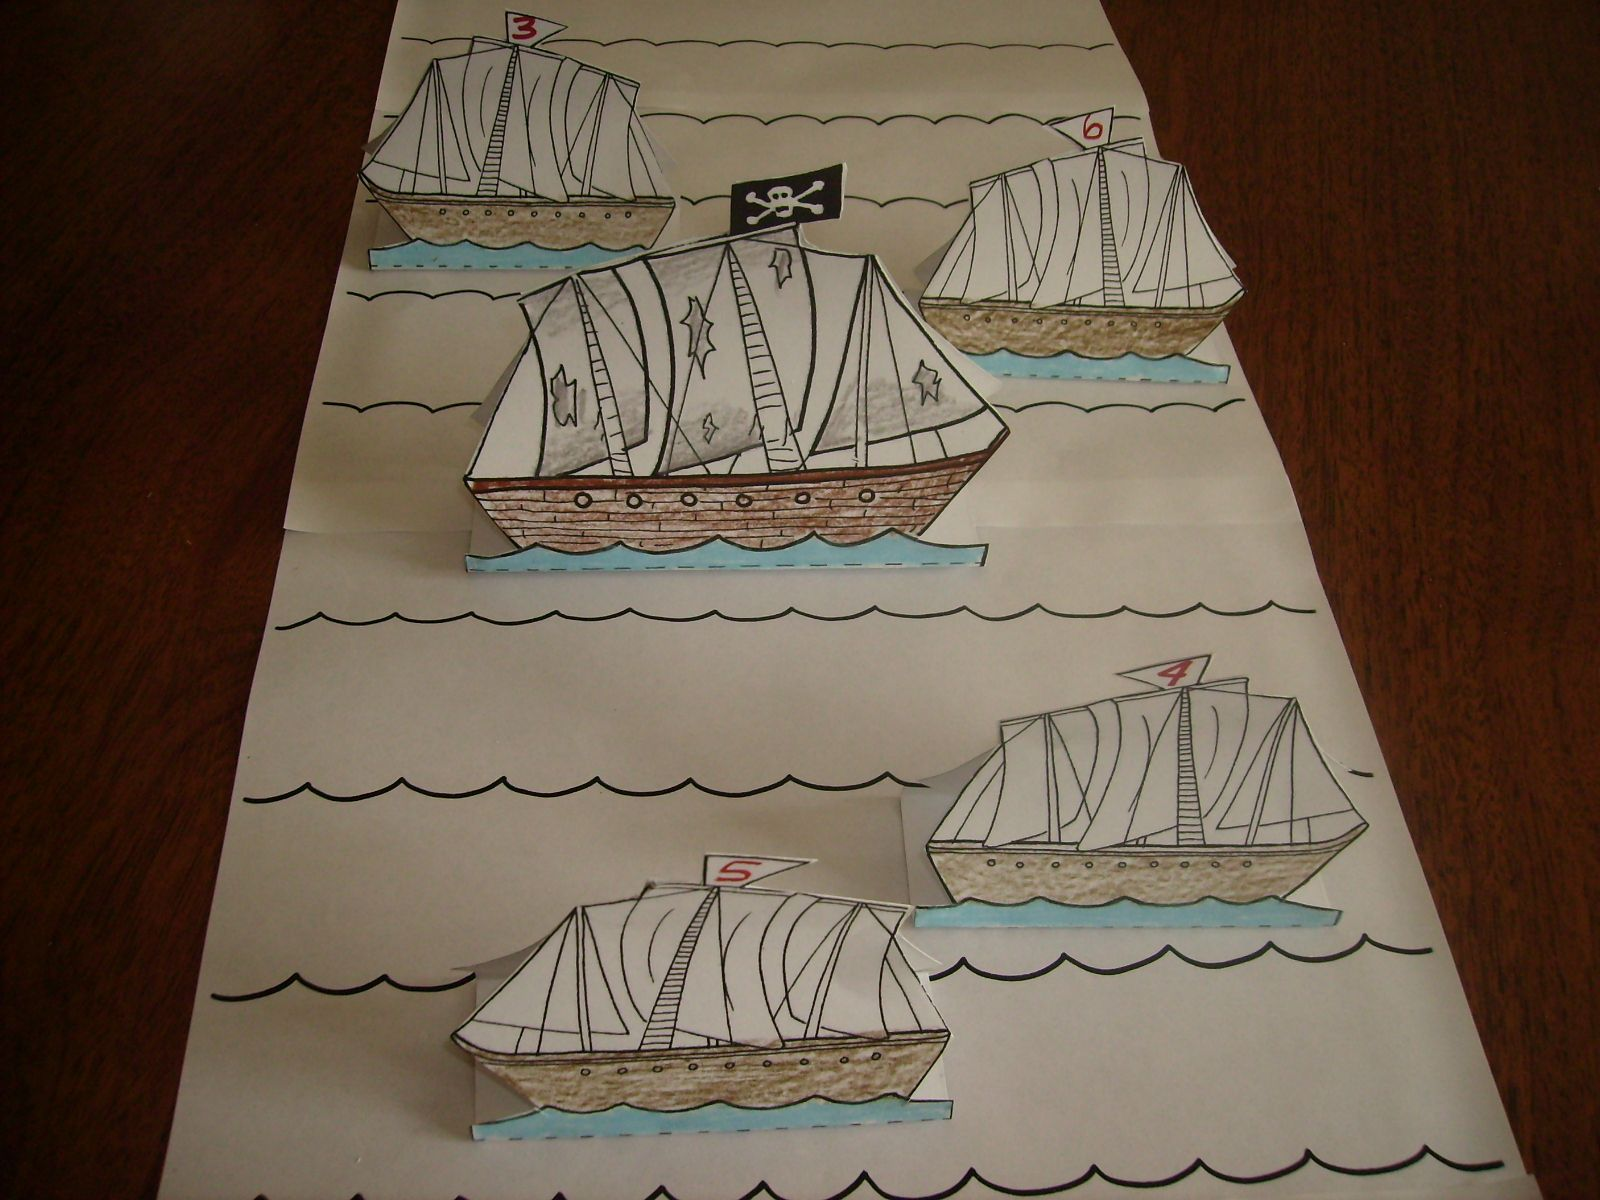 Loot The Pirate Ship Math Game Includes Free Downloadable